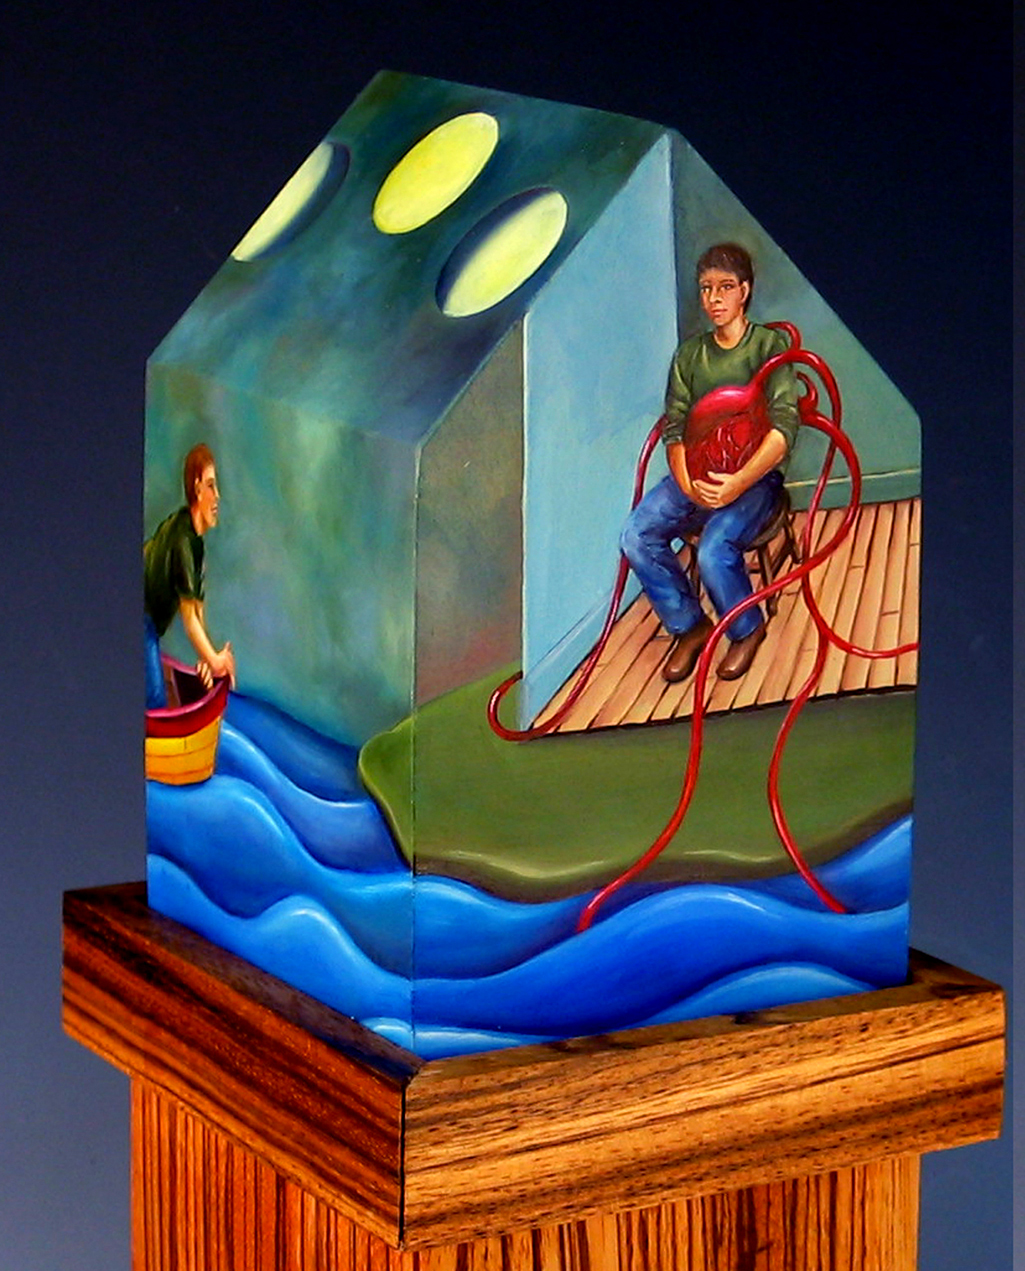 cathy weber - art - painting - woman -house - book art - artist book - book- river - montana - oil painting - wishbone - boat -ladder - moon